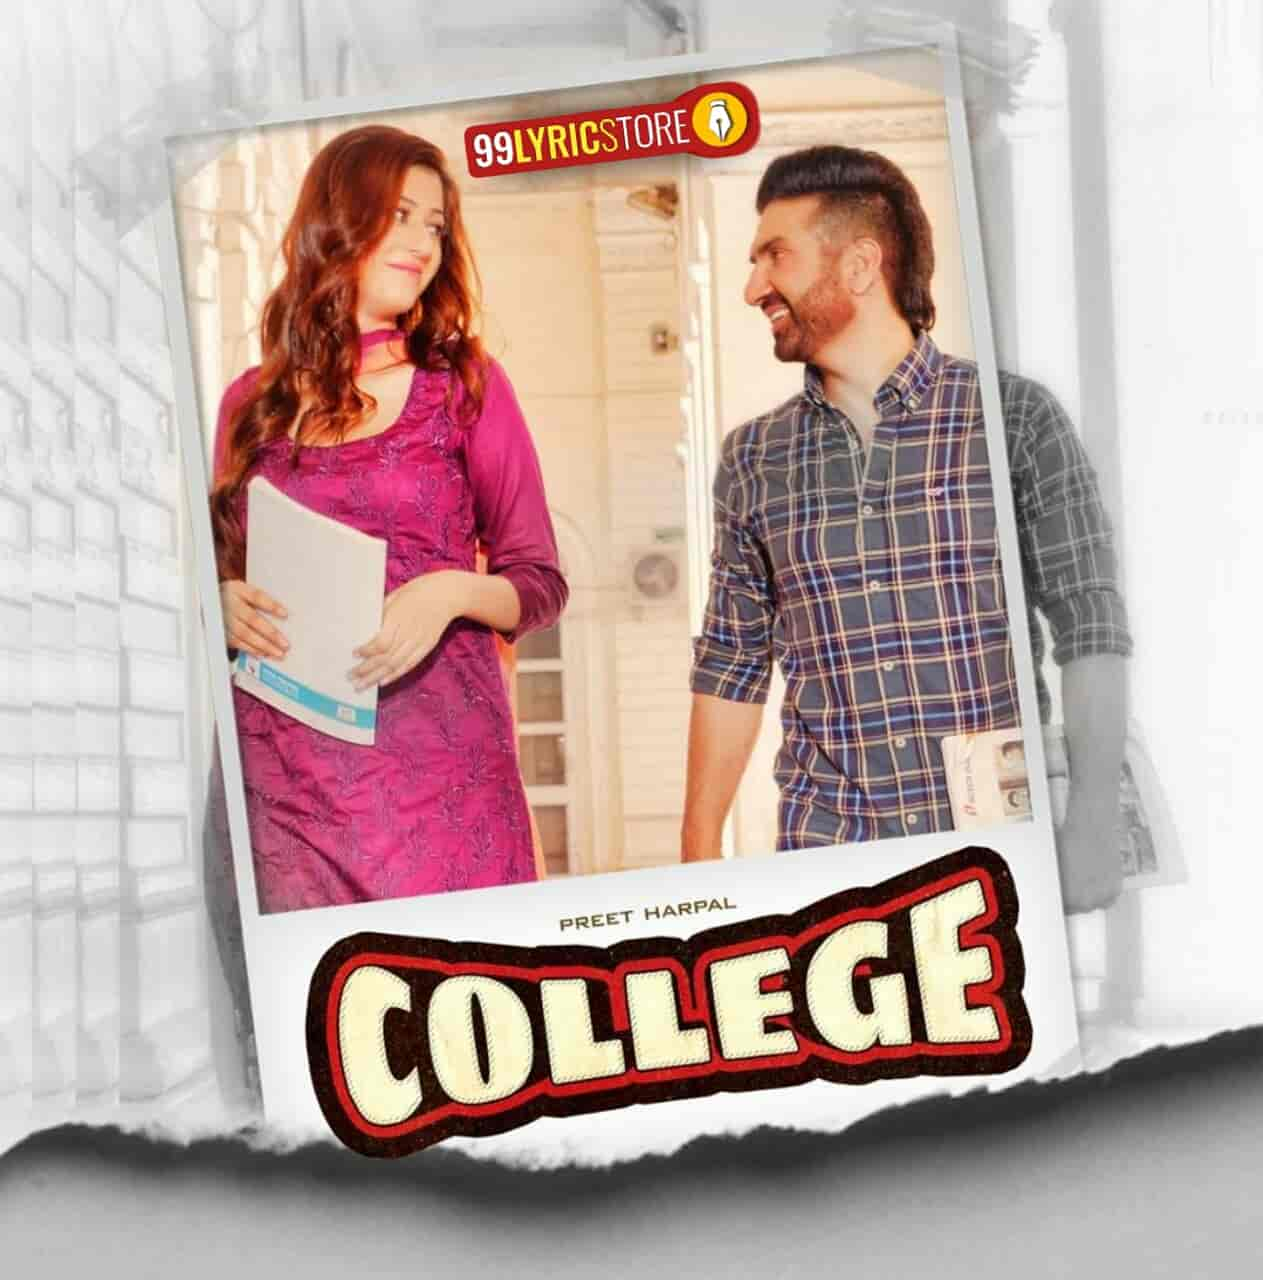 College Preet Harpal Song Images